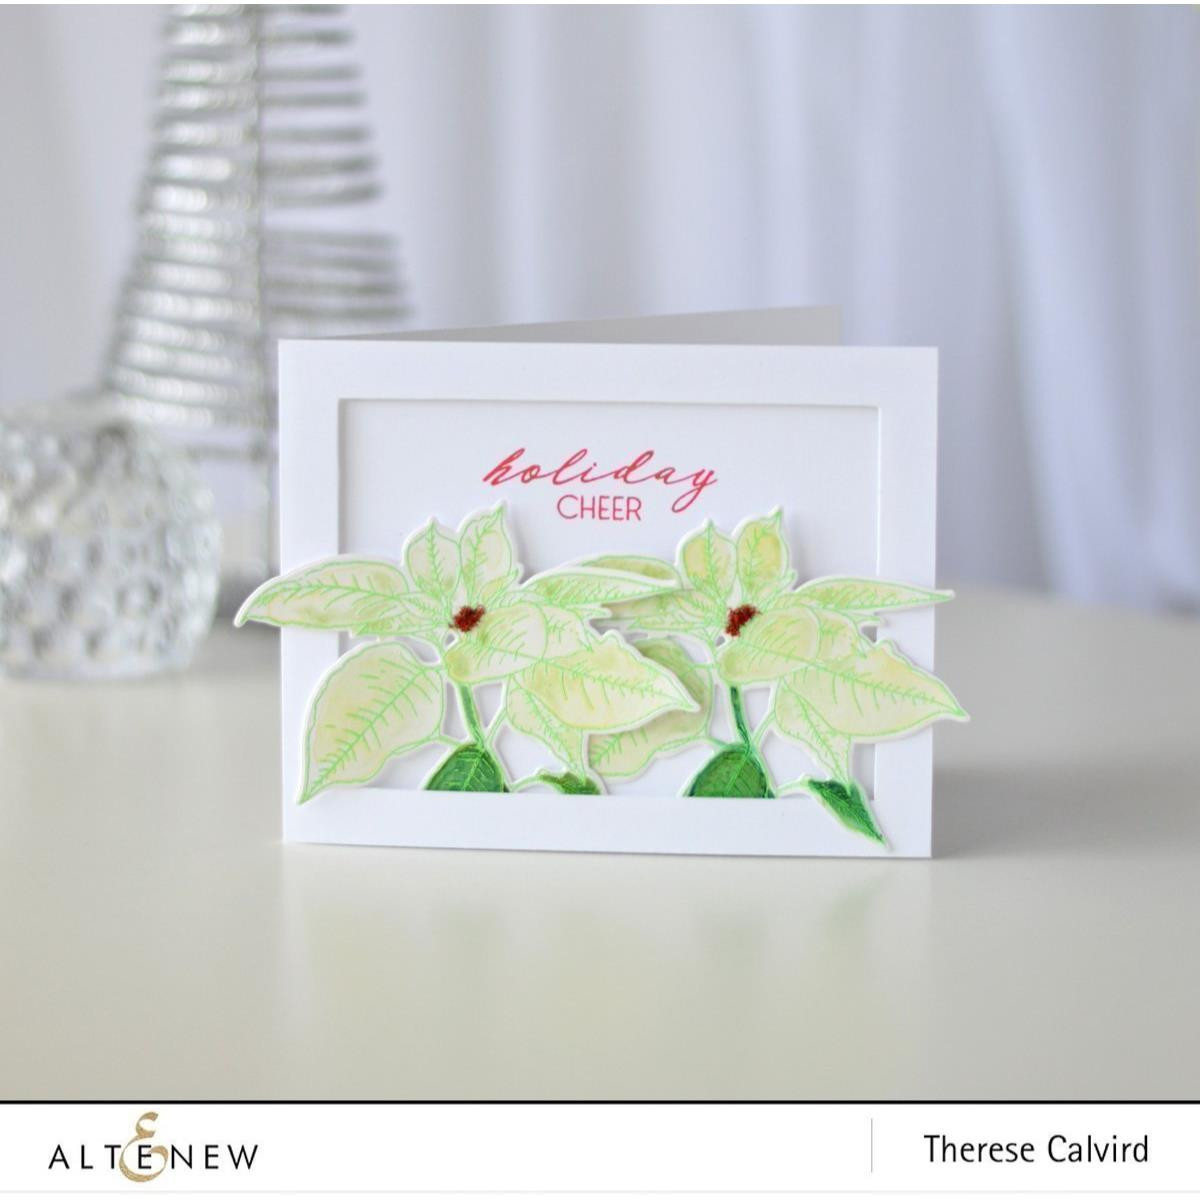 Festive Poinsettia, Altenew Clear Stamps - 655646173122